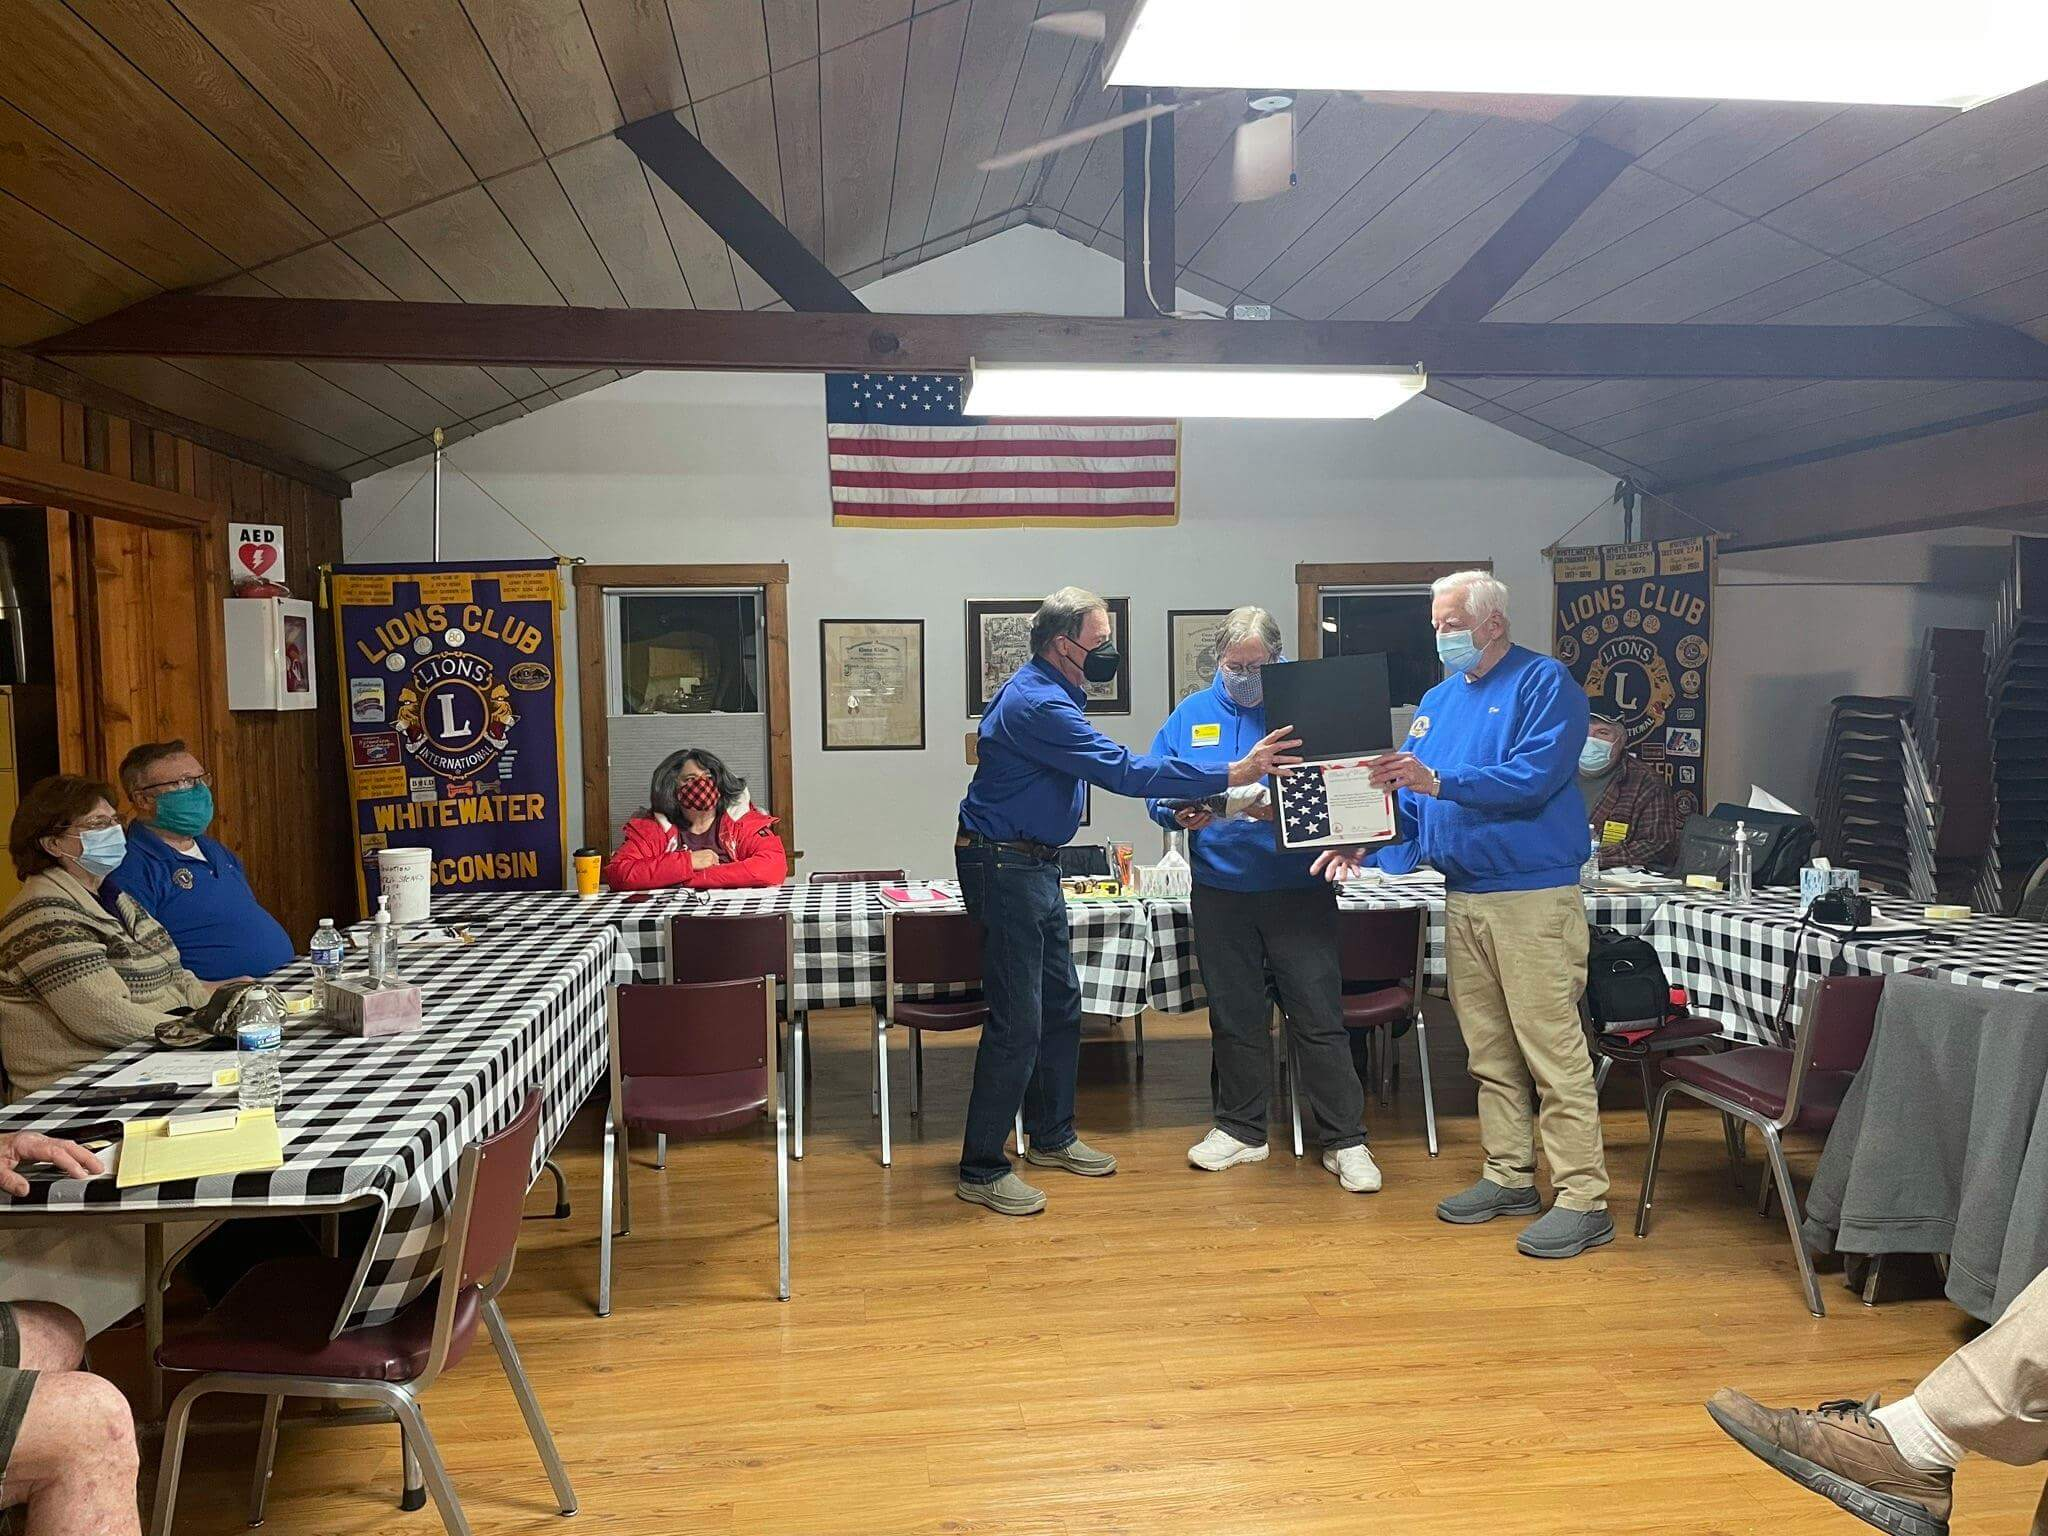 Whitewater Lions Club flag presentation